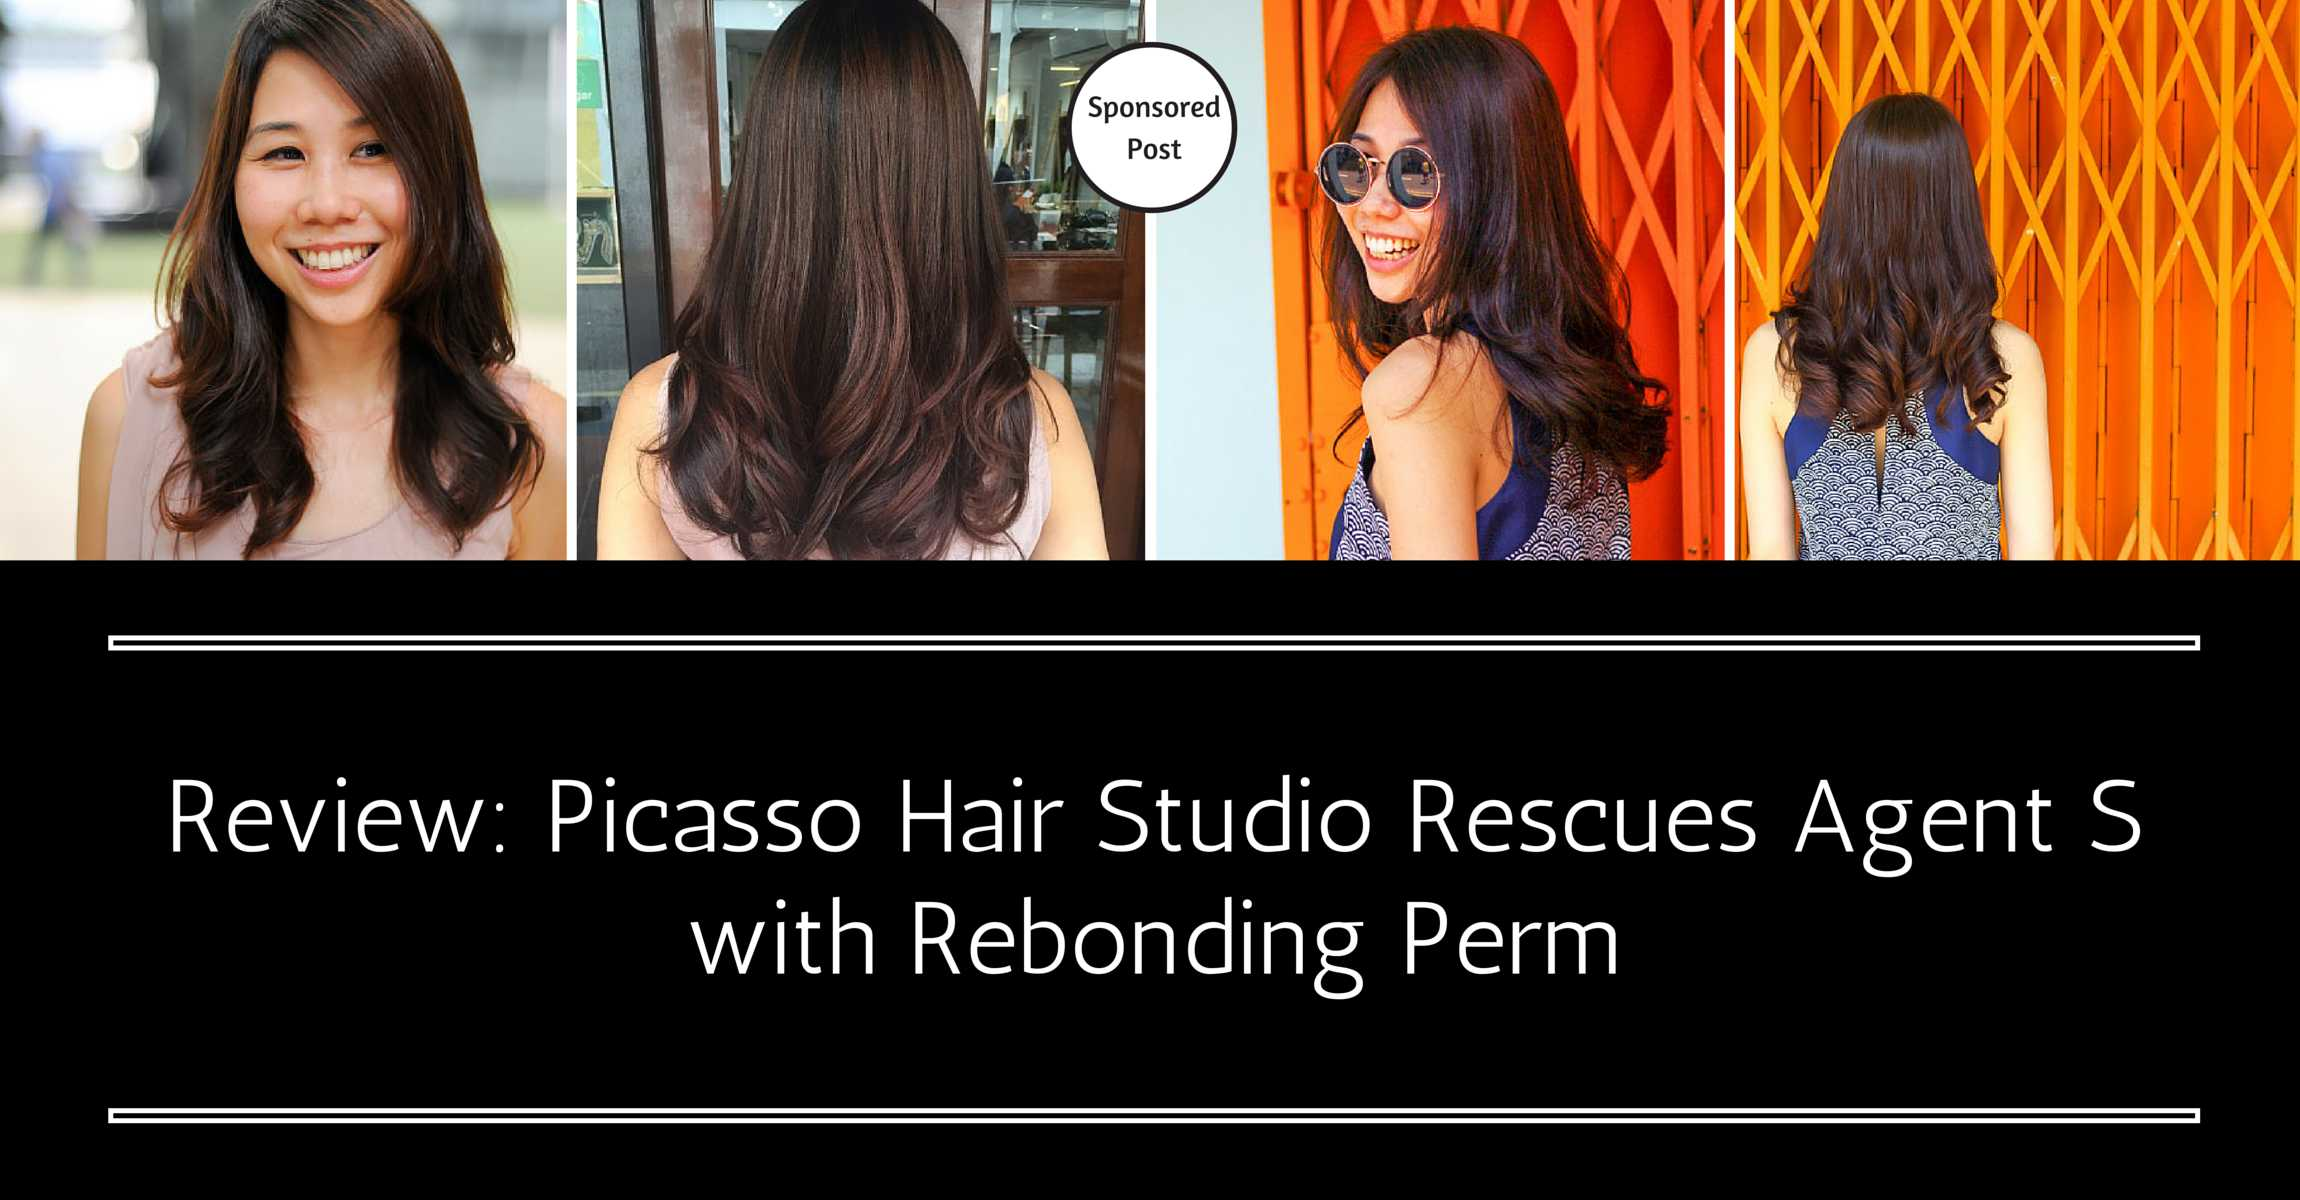 From Flat Hair to Volume Glamour: Picasso Hair Studio rescues Agent S with Rebonding Perm